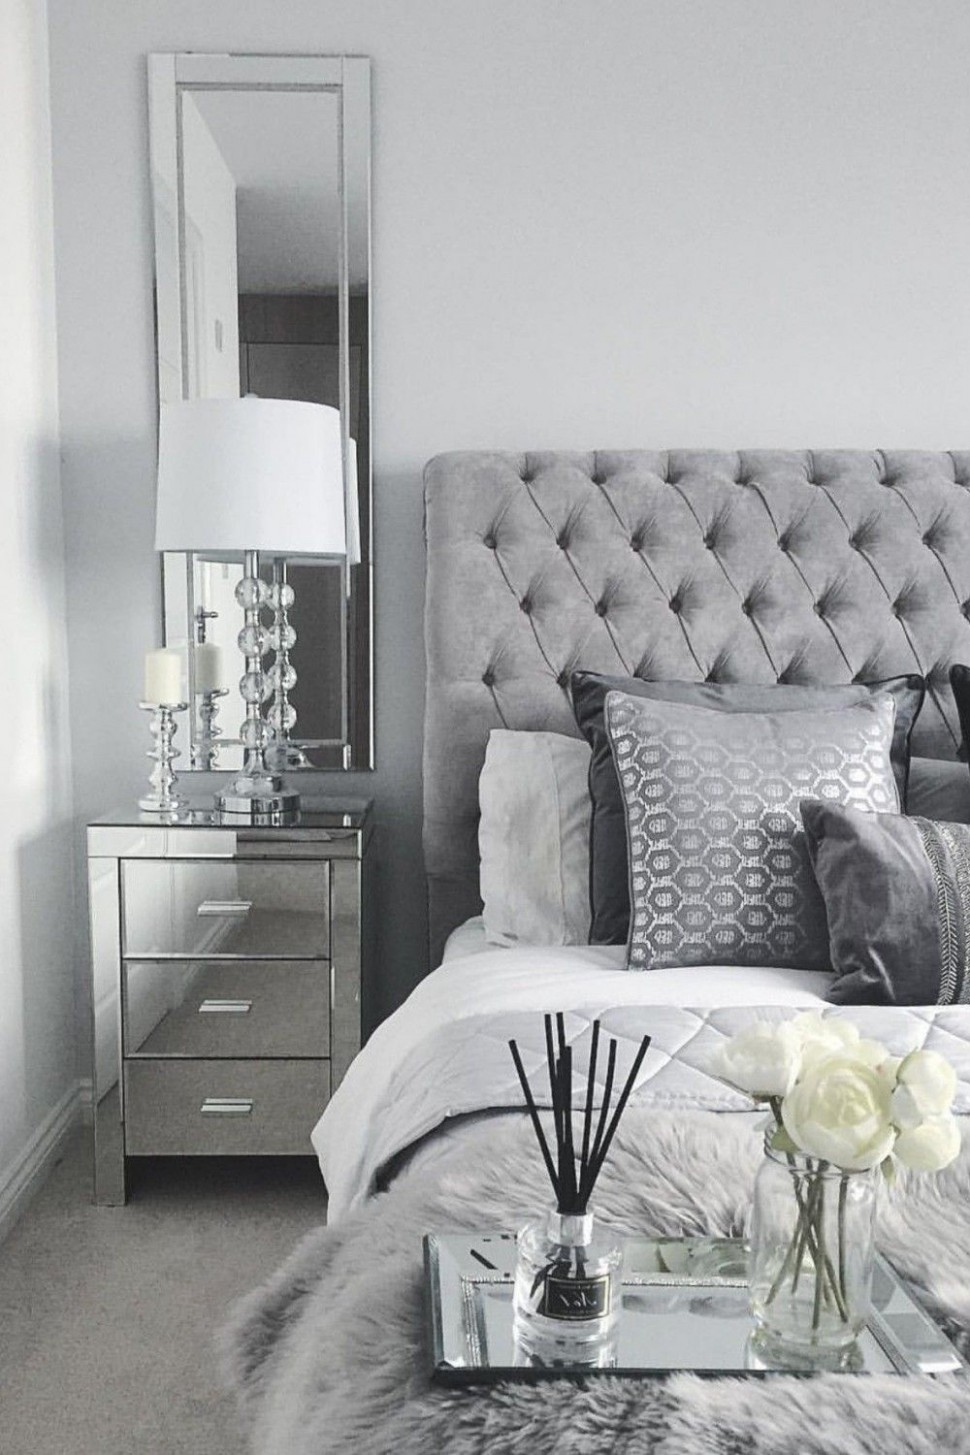 8 Best Of Grey and Silver Bedroom Ideas#bedroom #grey #ideas  - Bedroom Ideas Silver